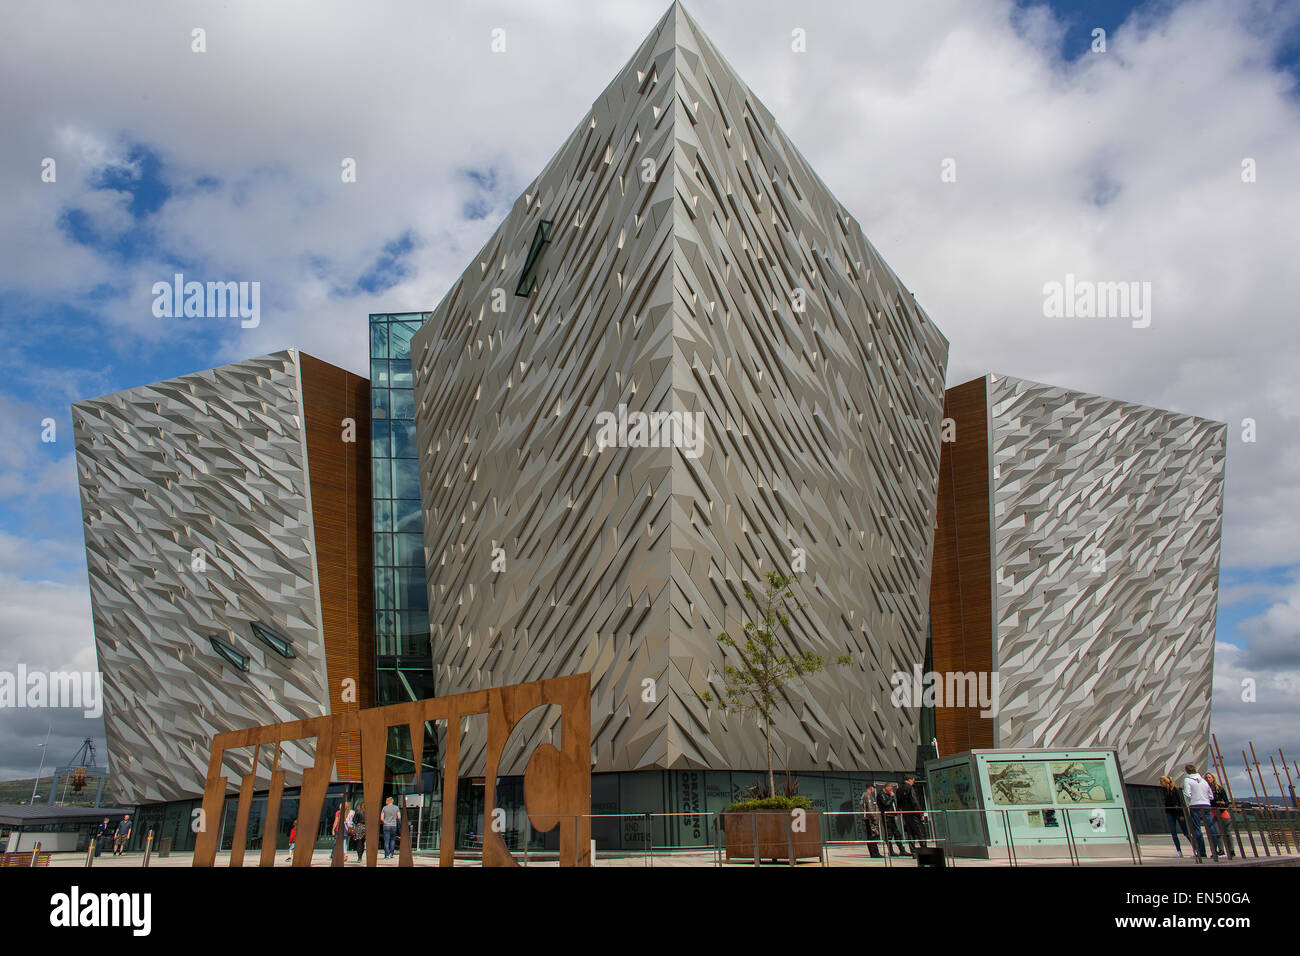 Titanic Belfast is a $165 million visitor attraction centrer - Stock Image